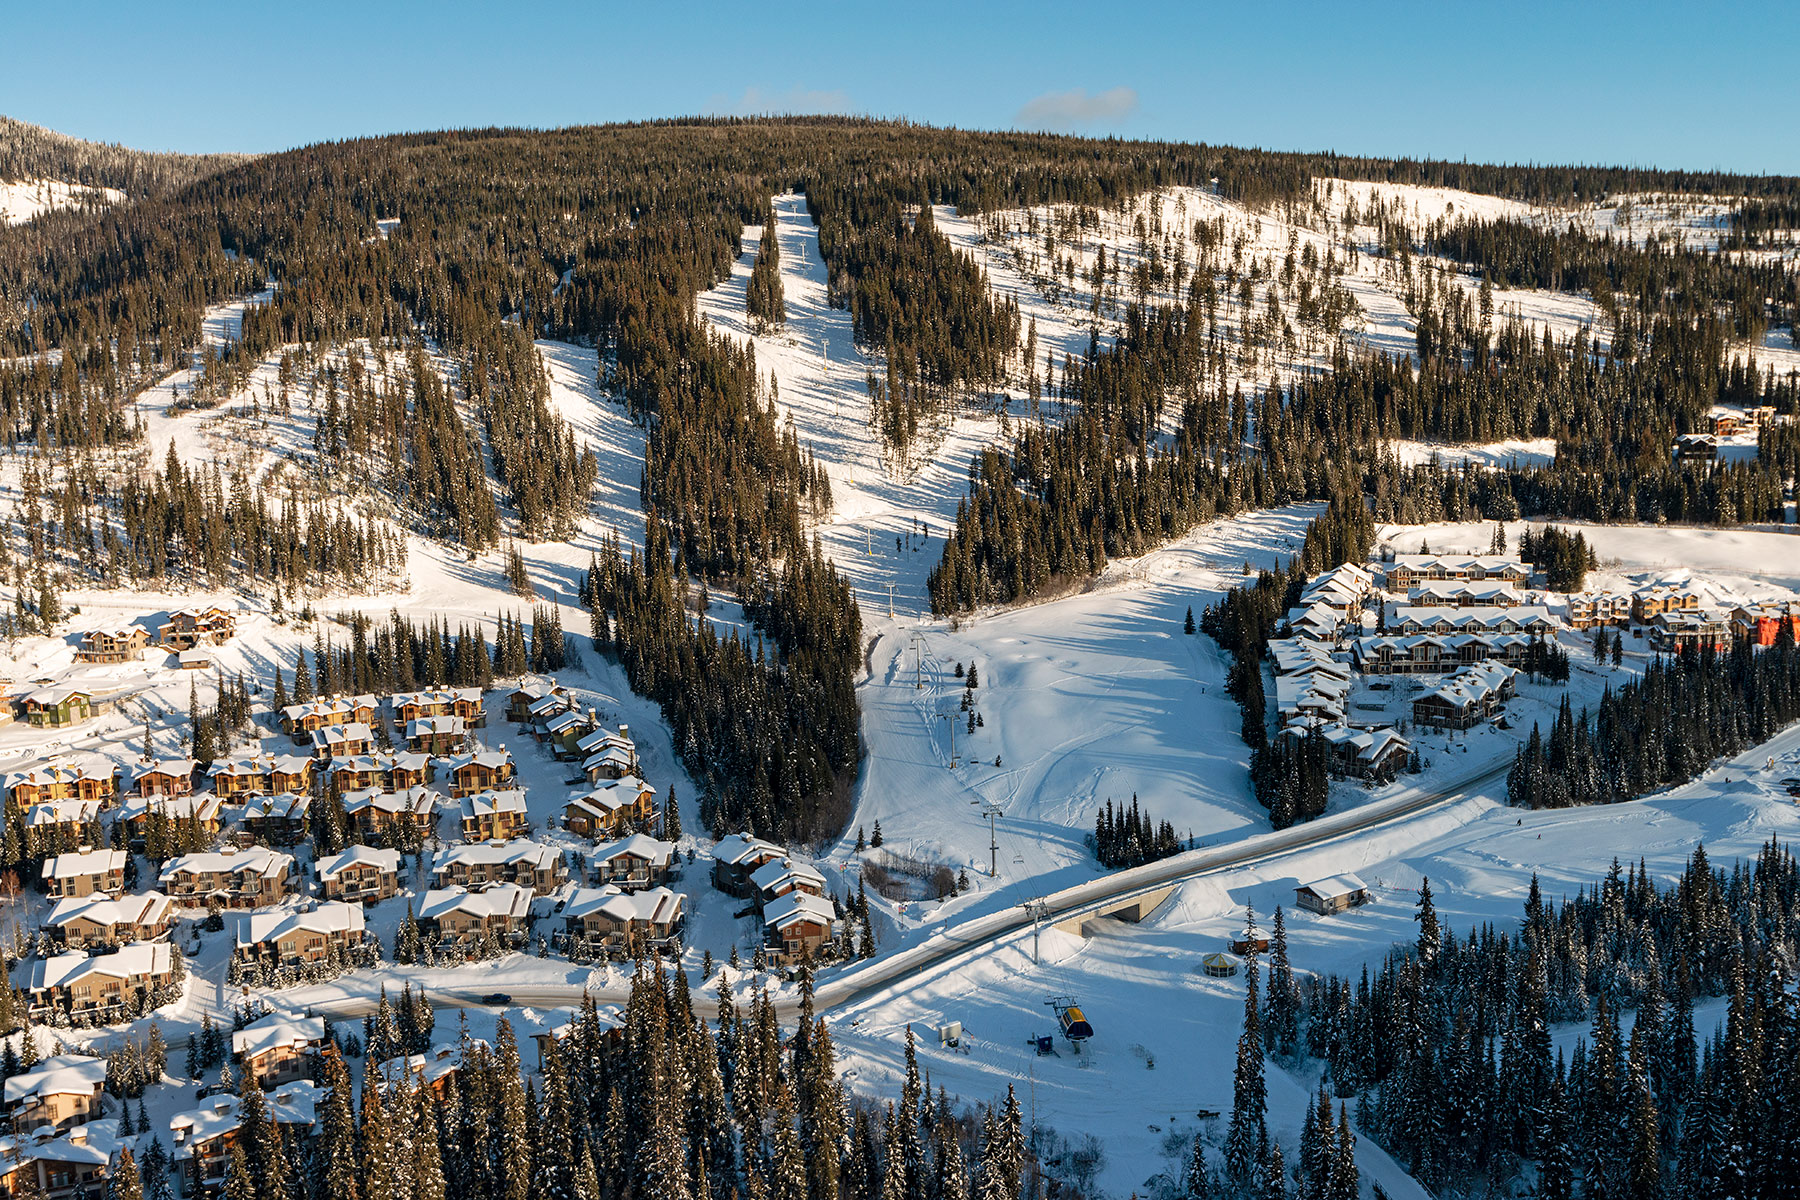 Aerial View of Orient Chairlift